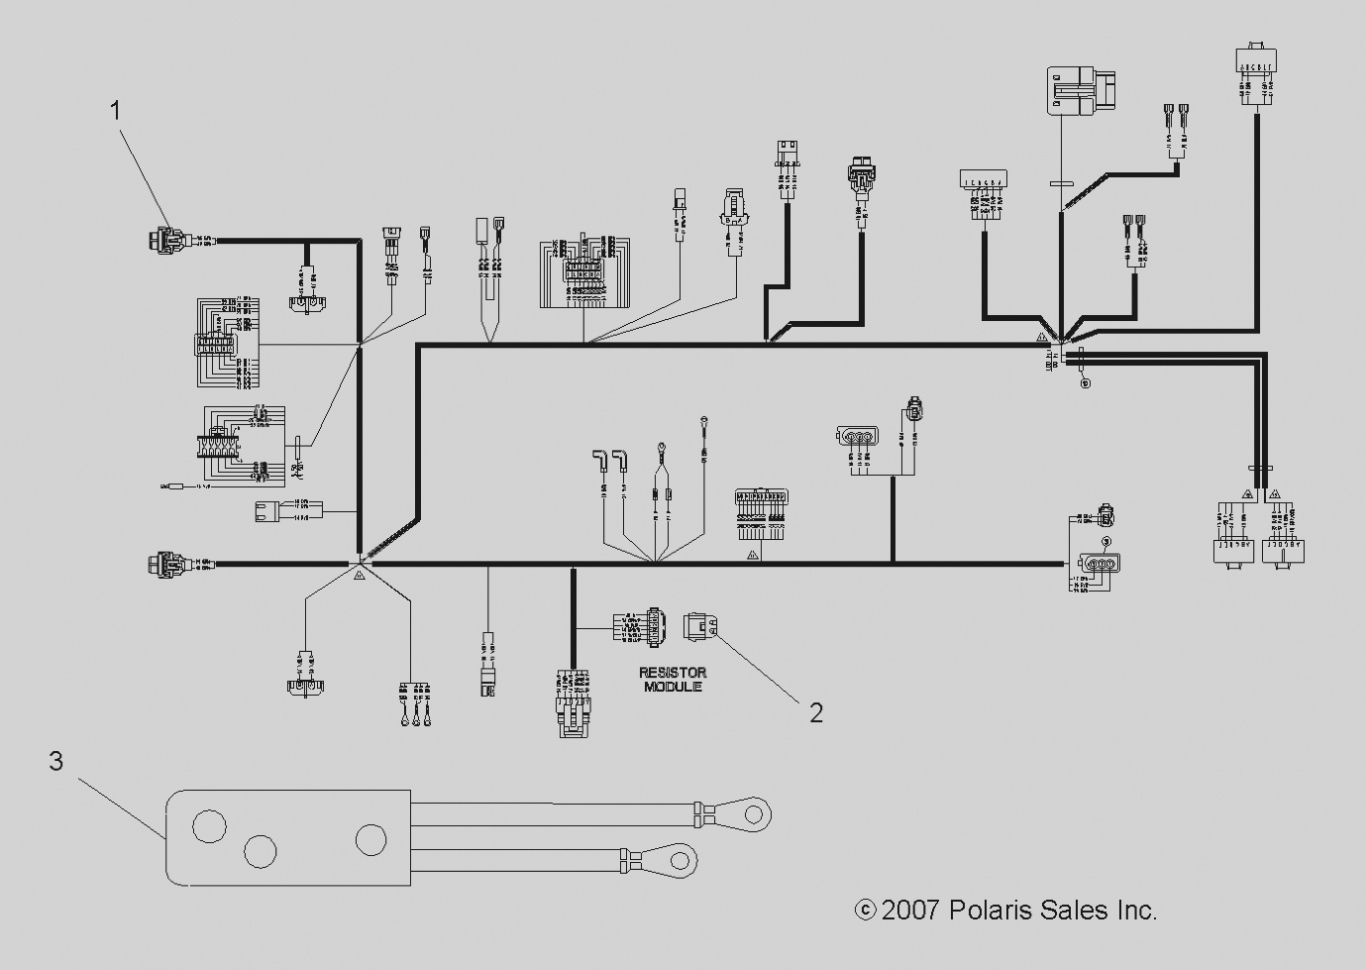 wiring schematic 2007 polaris ranger 700 xp